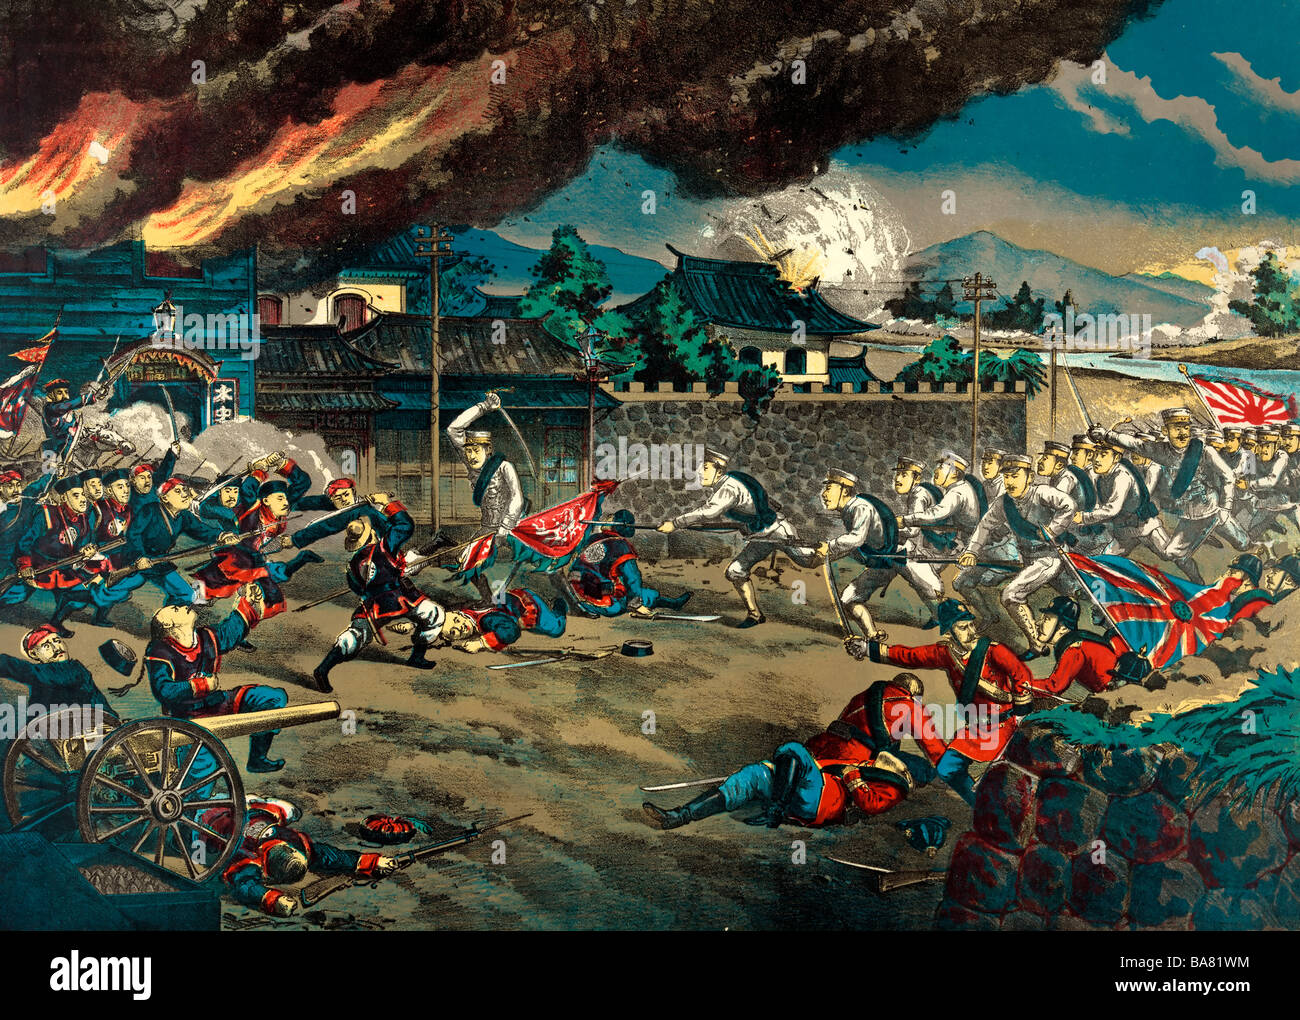 boxer uprising The boxer rebellion (拳亂), boxer uprising or yihetuan movement (義和團運動) was an anti-foreign, anti-colonial and anti-christian uprising that took place in china between 1899 and 1901, toward the end of the qing dynasty.